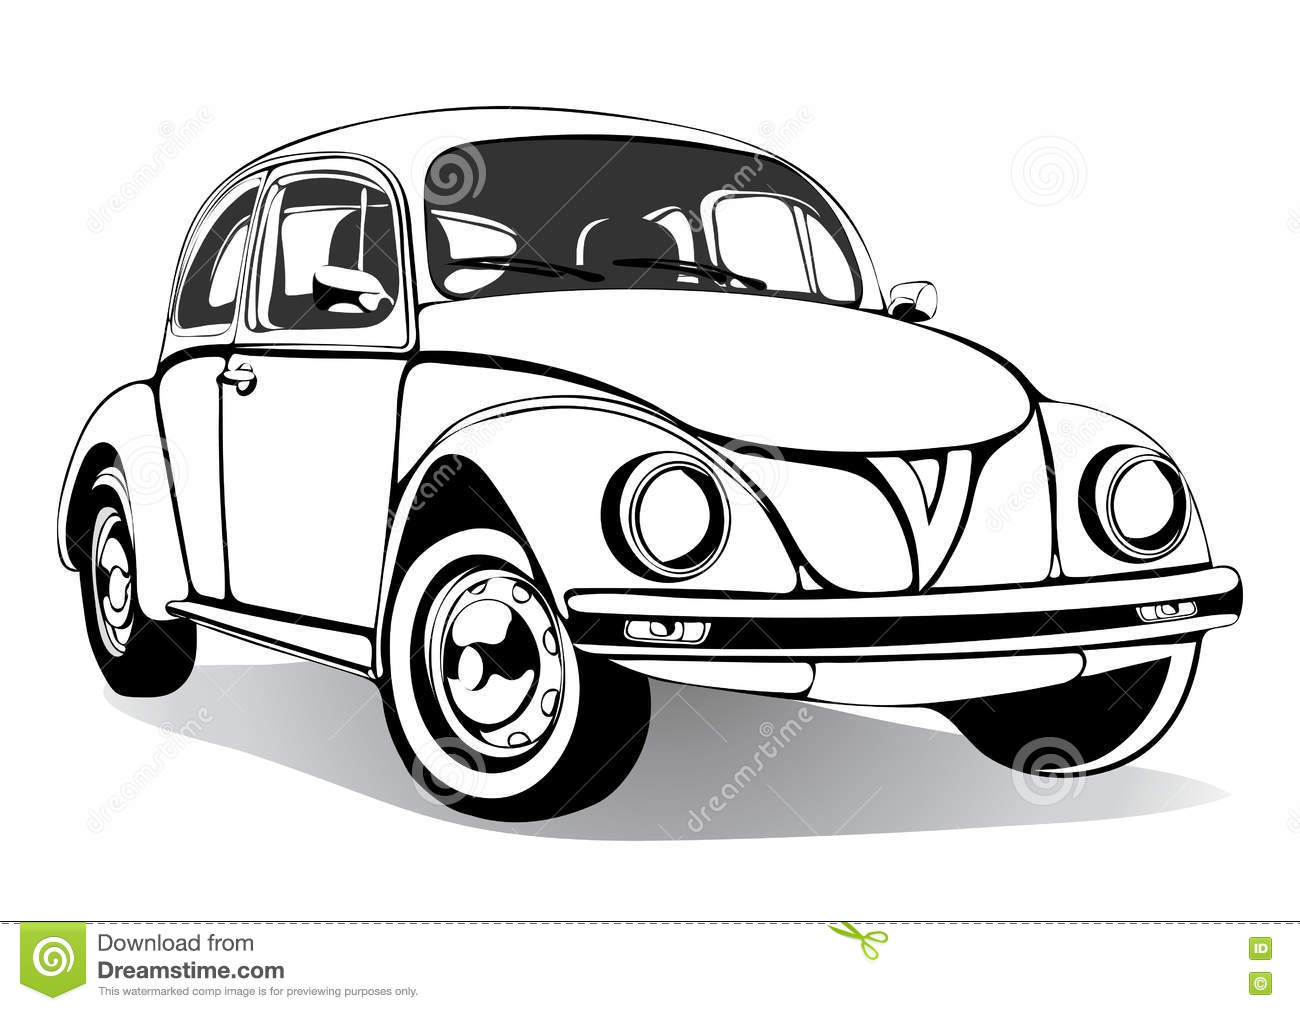 vintage car sketch coloring book black white drawing monochrome retro cartoon transport vector illustration 78499966 likewise antique car coloring book 1 on antique car coloring book besides antique car coloring pages on antique car coloring book also antique car coloring book 3 on antique car coloring book moreover antique car coloring book 4 on antique car coloring book